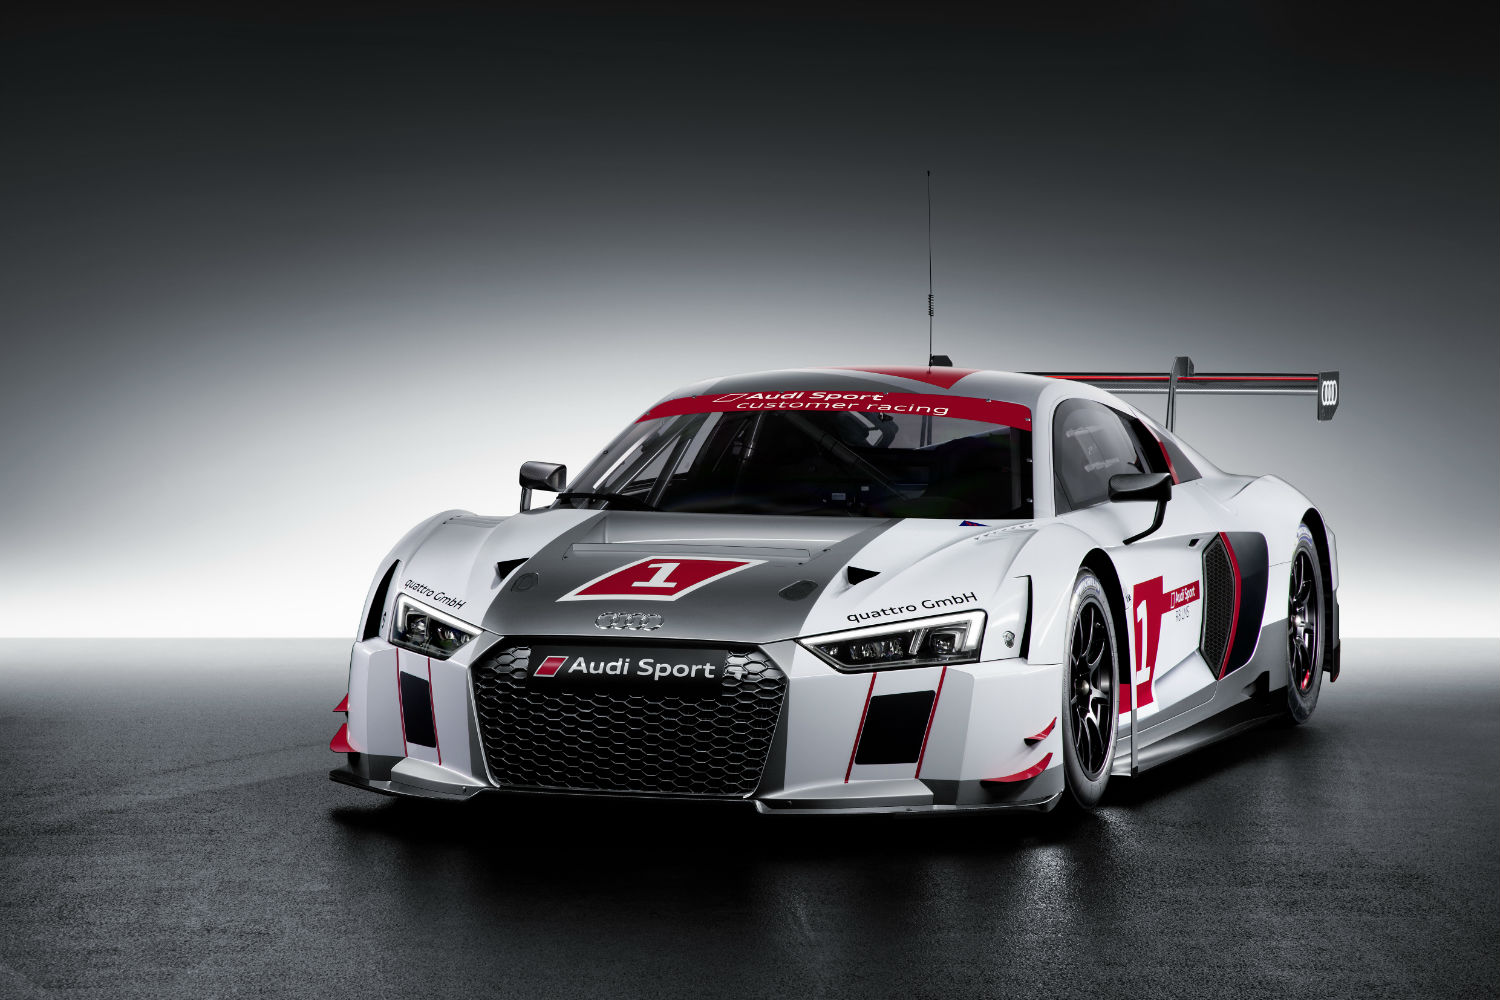 audi r8 lms 2015 das ist audis neuer gt3 renner addicted to motorsport. Black Bedroom Furniture Sets. Home Design Ideas